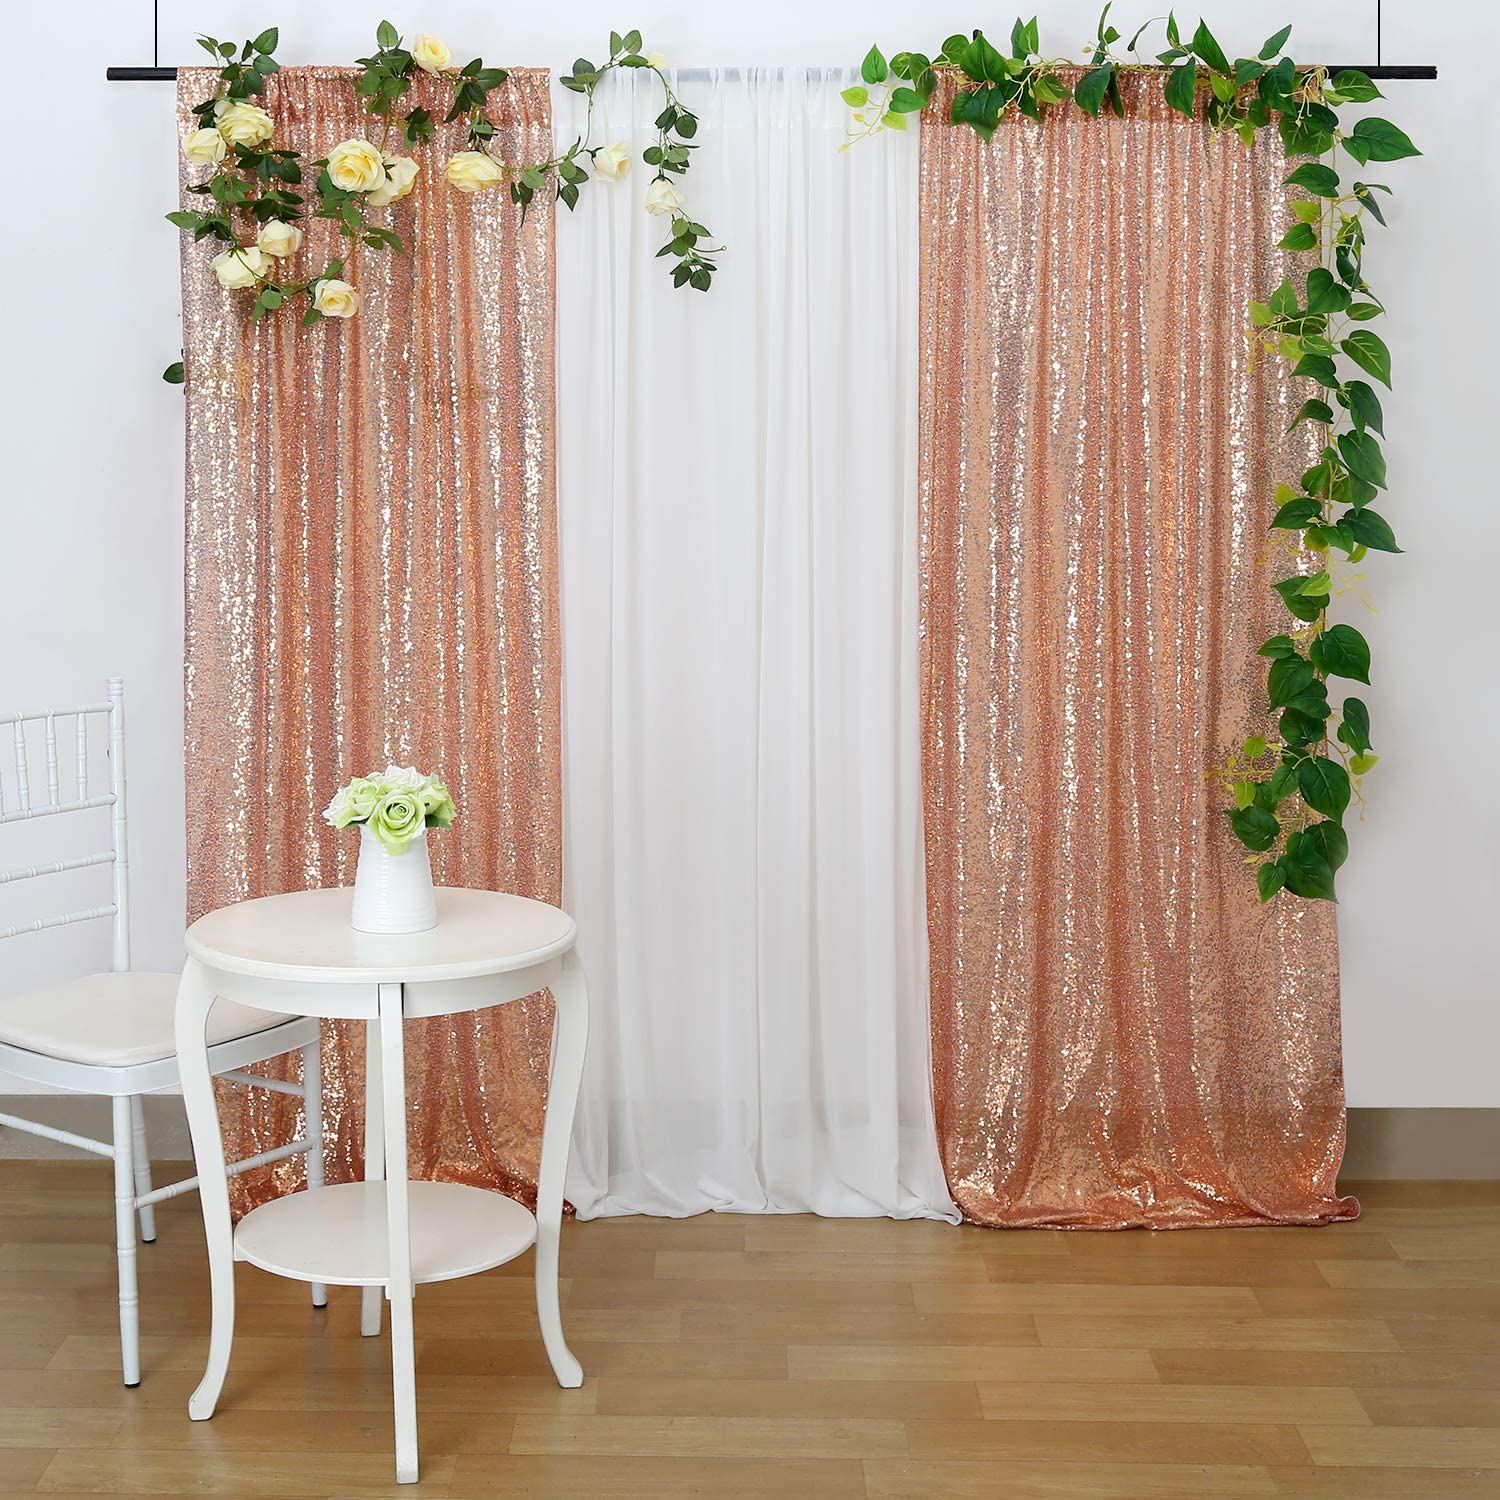 Sequin Backdrop Sparkly Photo Curtain 4ftx6.5ft Champagne Blush Wedding Party Christmas Back Curtain